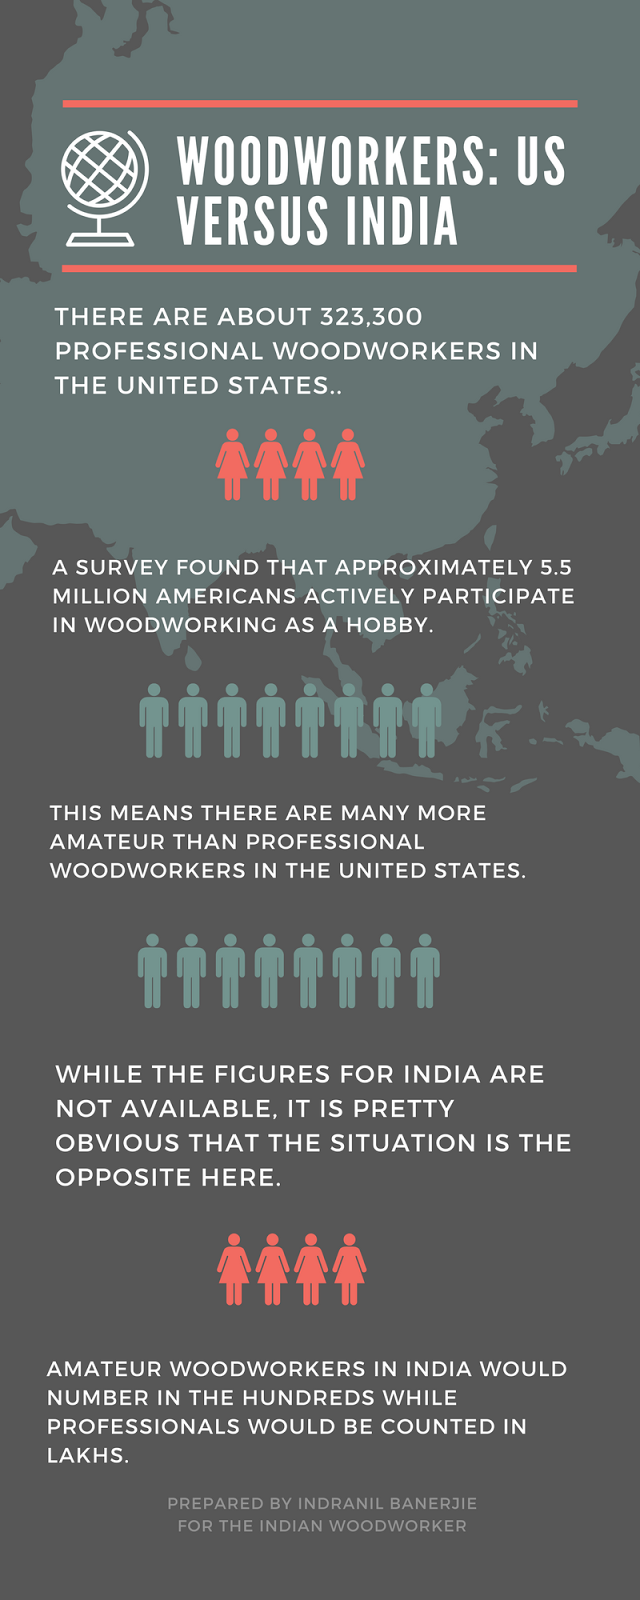 Woodworkers in India Vs. US